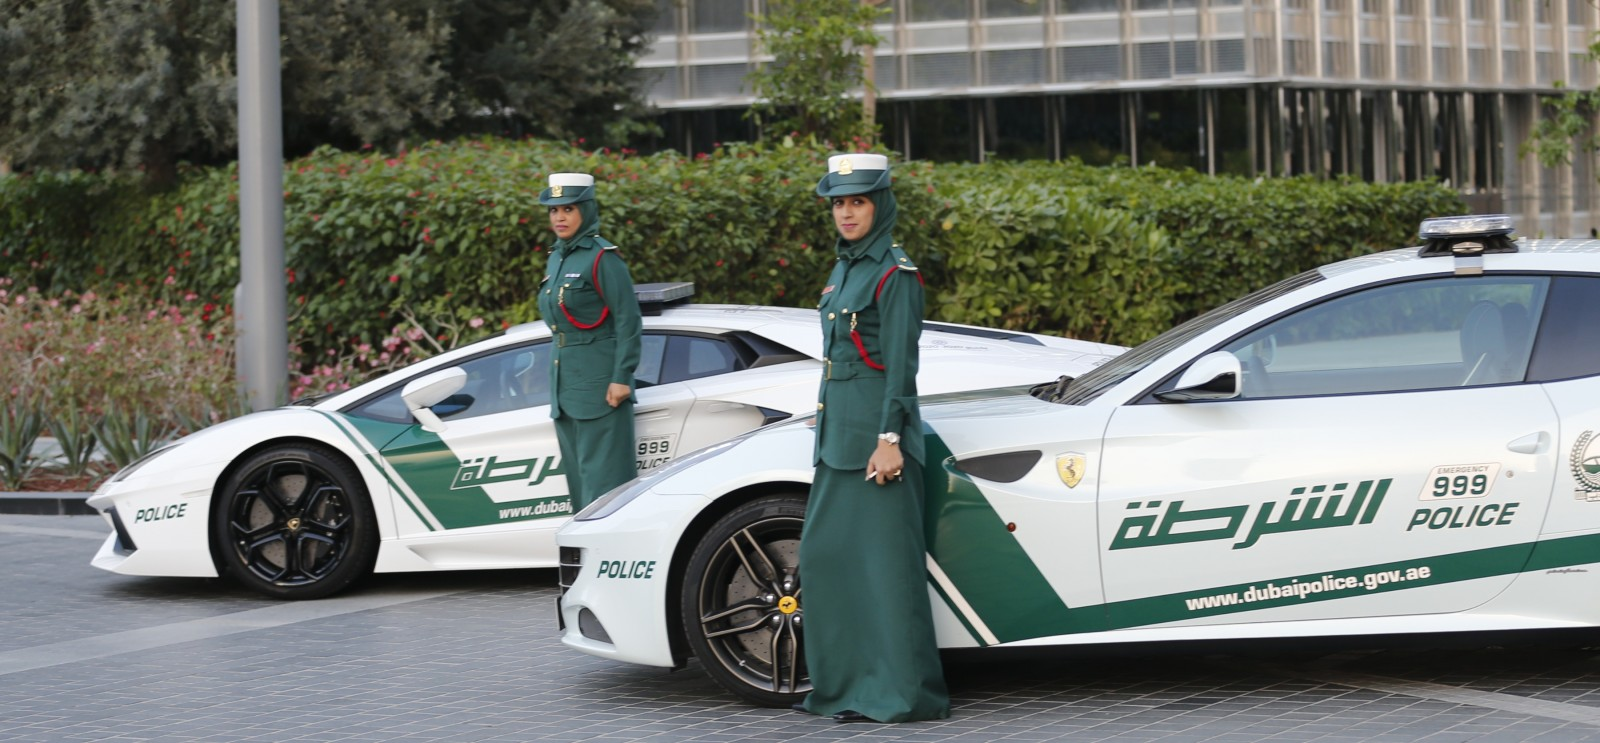 Dubai S Lamborghini Police Cars And Bikes Are Ecological Opposites Green Prophet